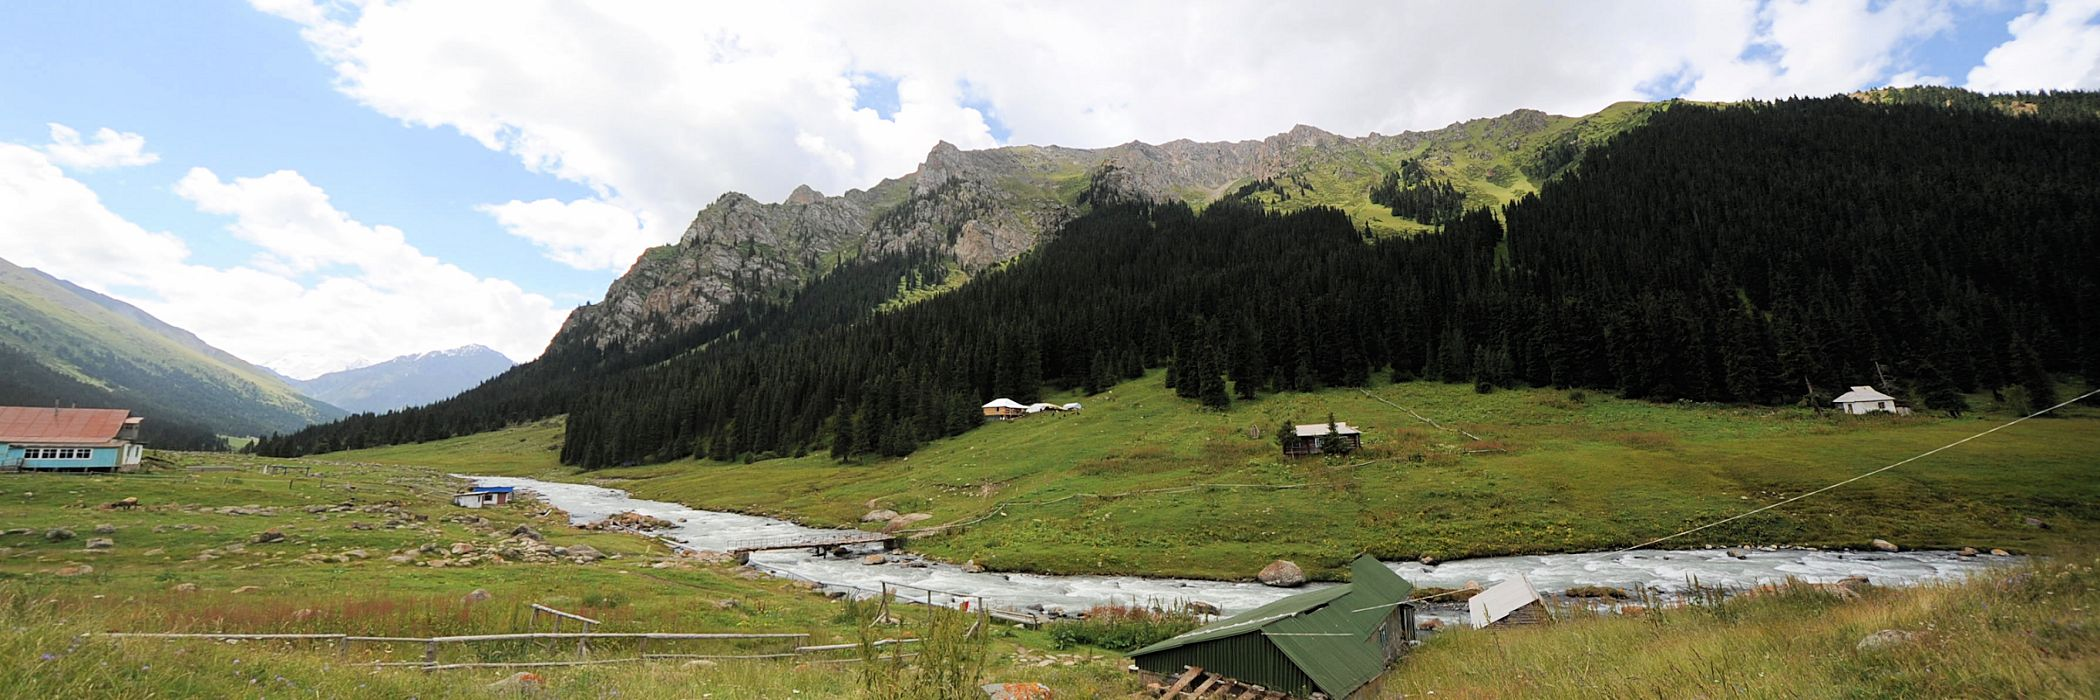 Central Asian Highlands: Altyn Arashan valley near Karakol